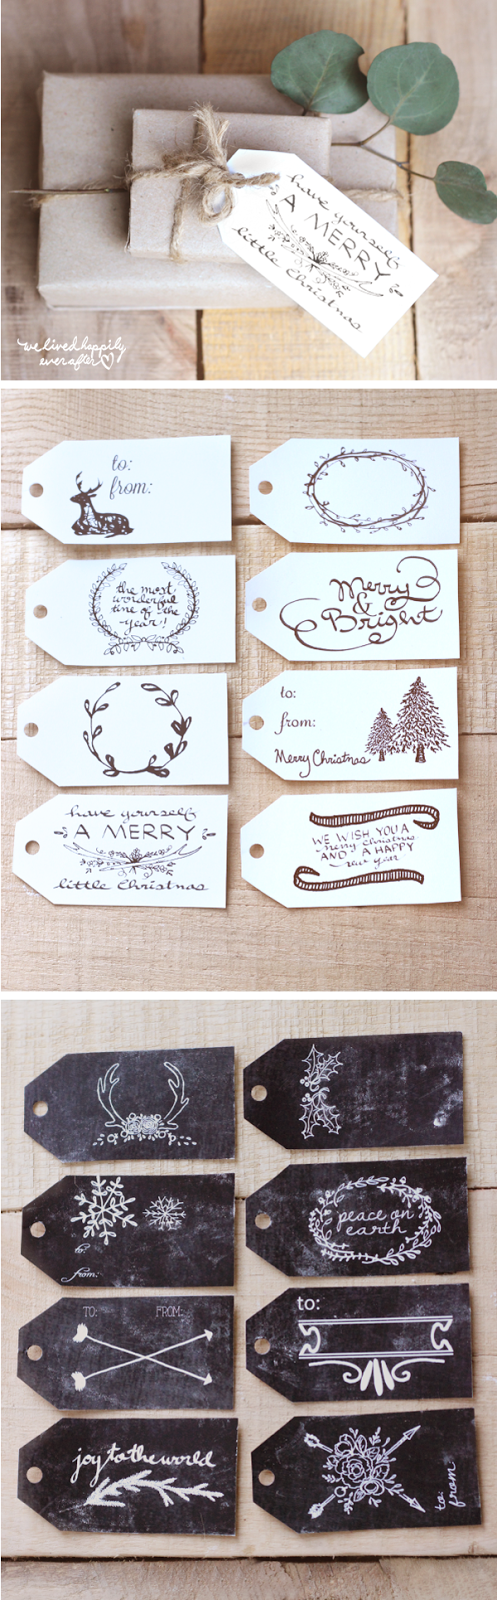 We Lived Happily Ever After: Free Christmas Gift Tag Printables